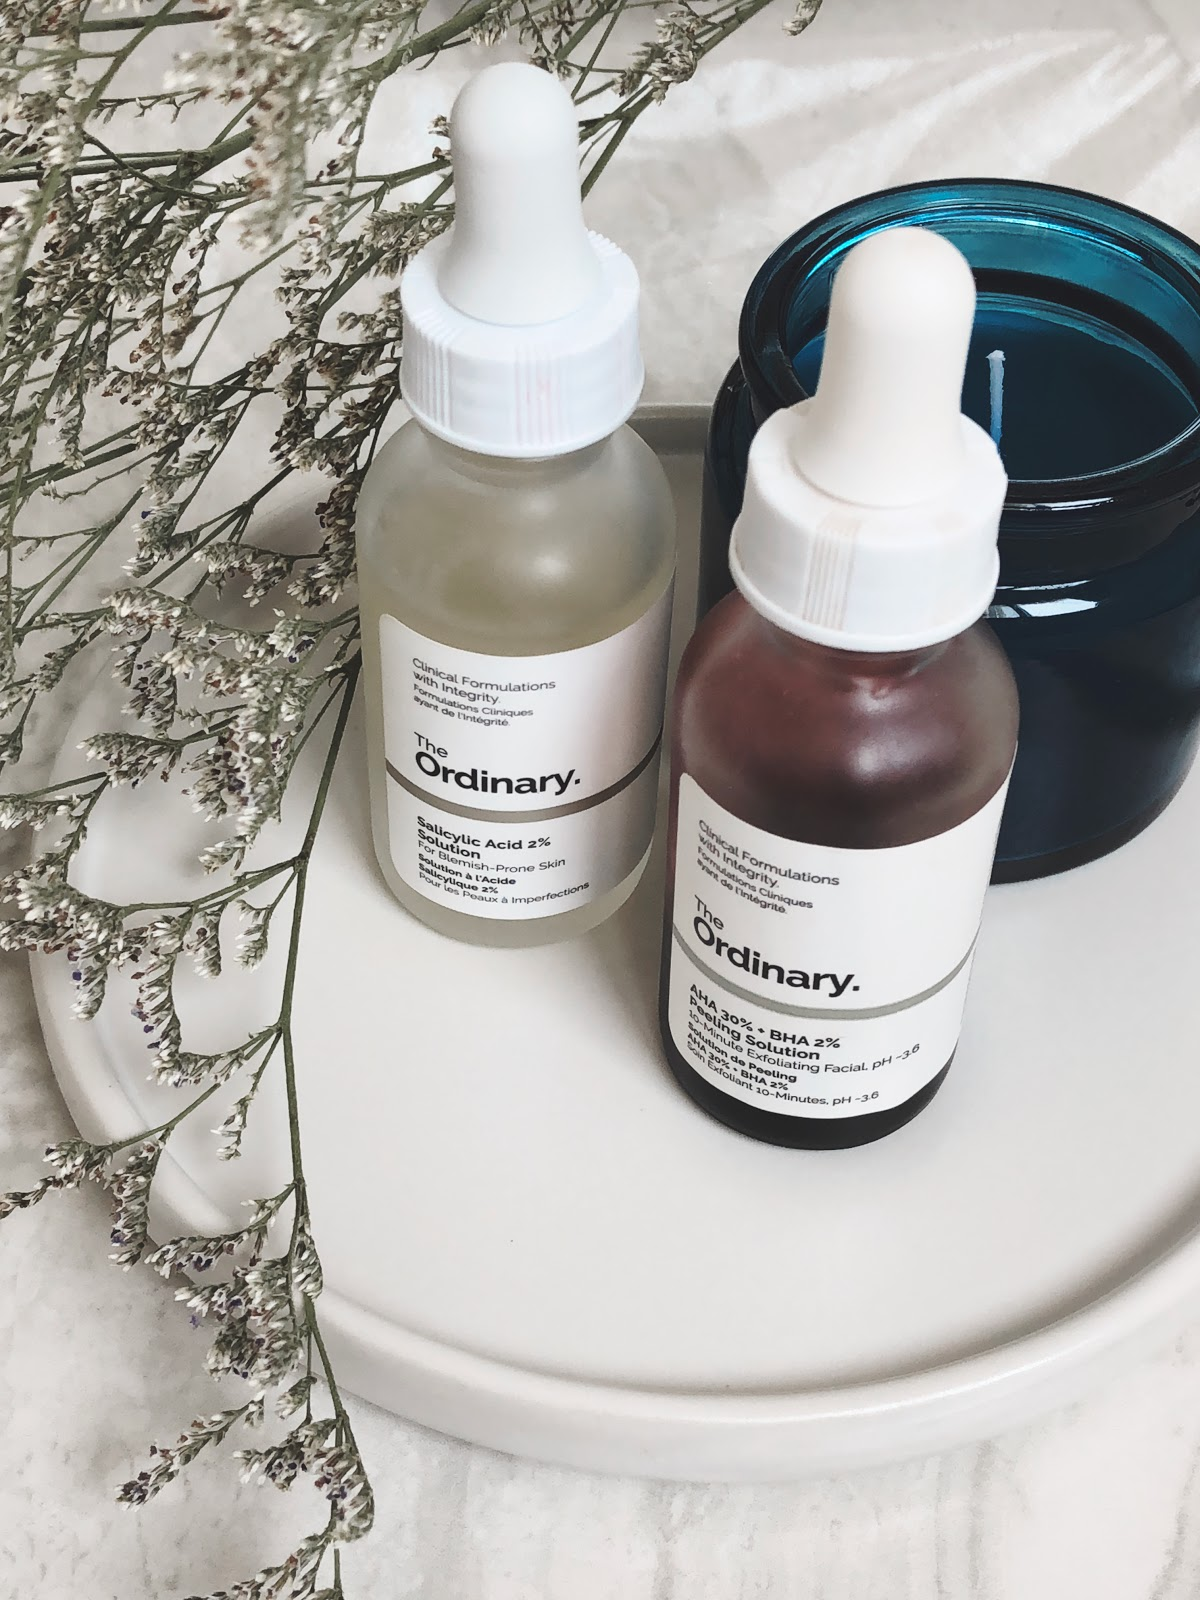 ab1b0df4ad5c5 Today s post is about two products I have tried from The Ordinary brand  that I really like and saw improvement in my skin after using.